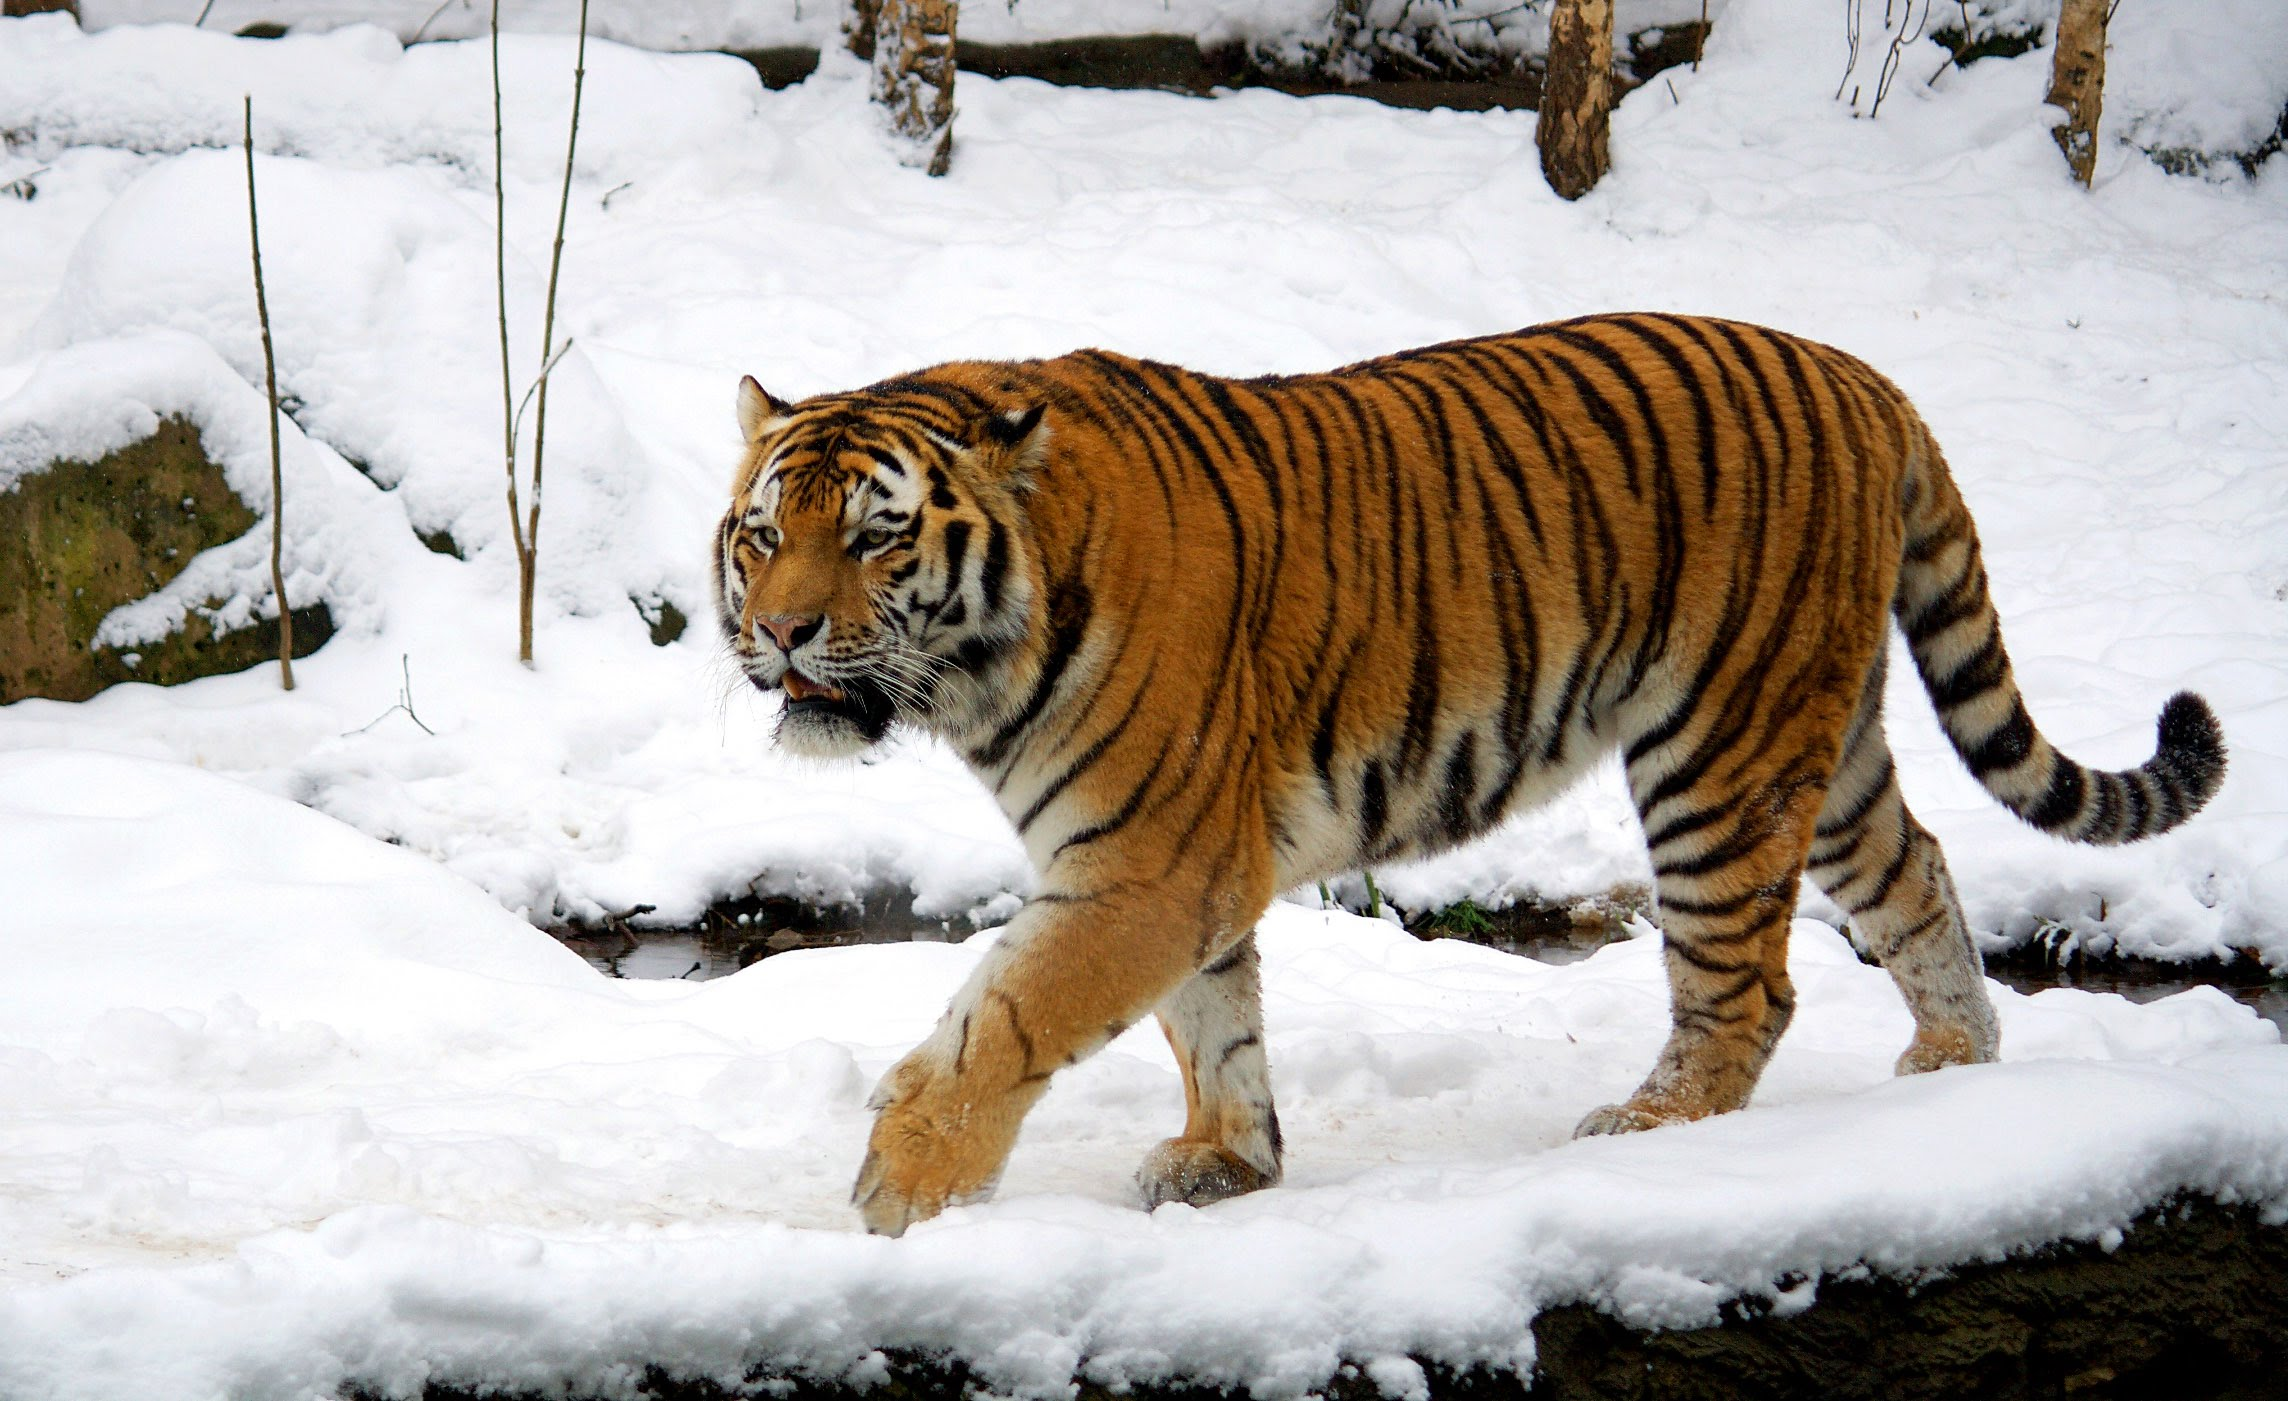 tigers distribution traits and characteristics Introduction tigers (and all other carnivores) have descended from miacids that lived during the ice-age approximately 37 cat species exist today, including panthera tigris, the tiger.